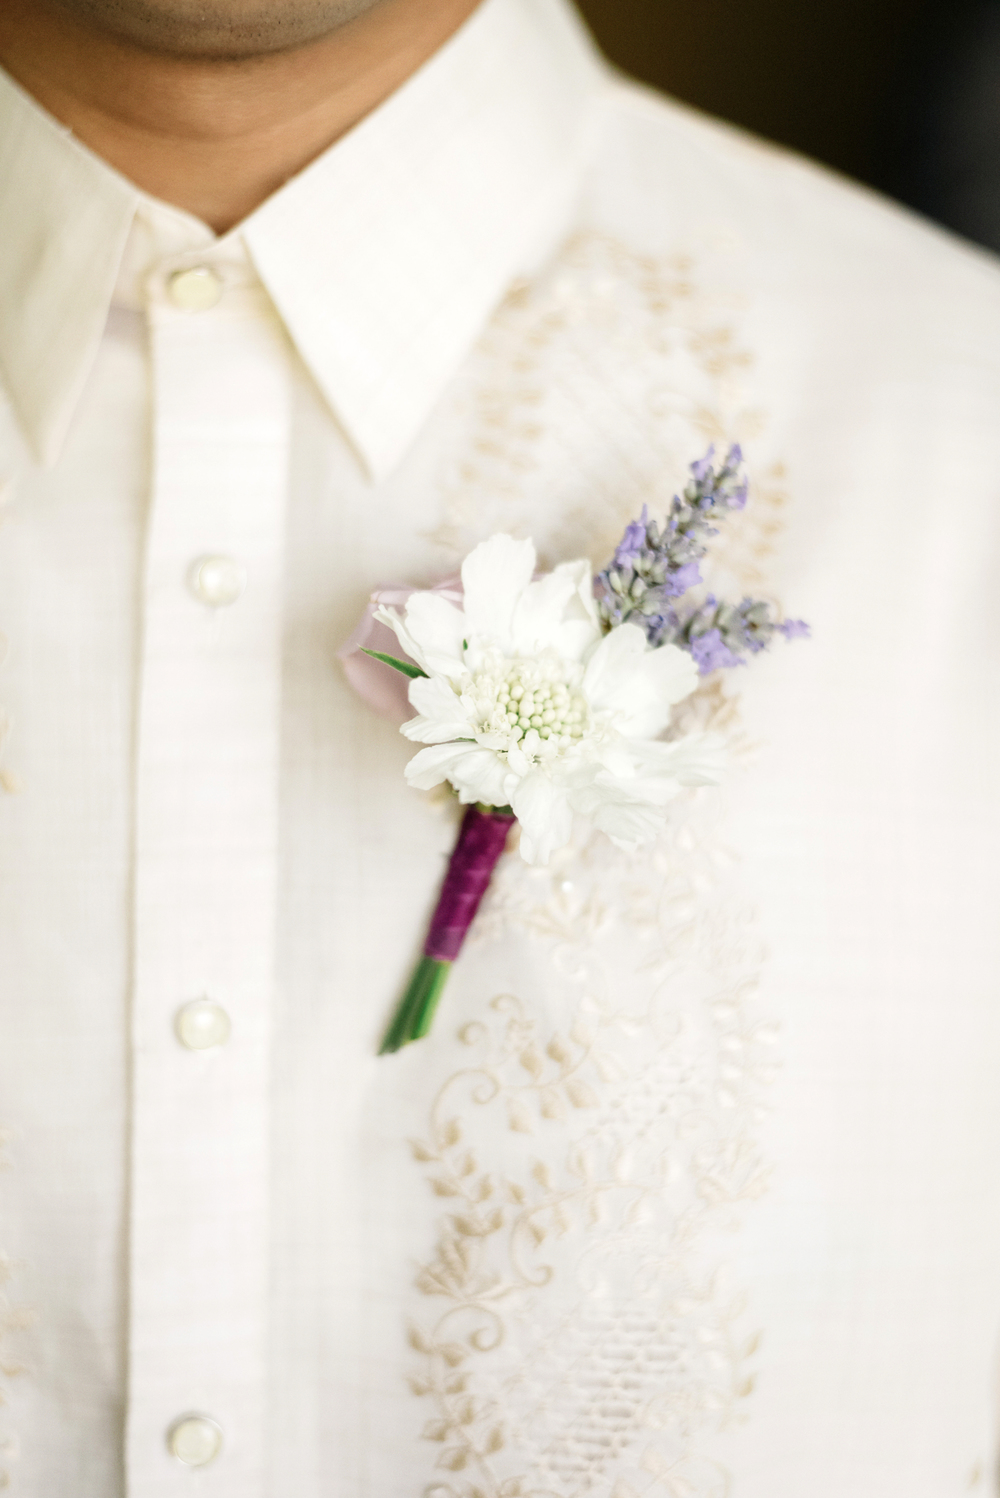 White Wedding Boutonniere | Joe and Patience Photography | Filipino Wedding Planner | Seattle Wedding Planner | Ballard Bay Club Wedding